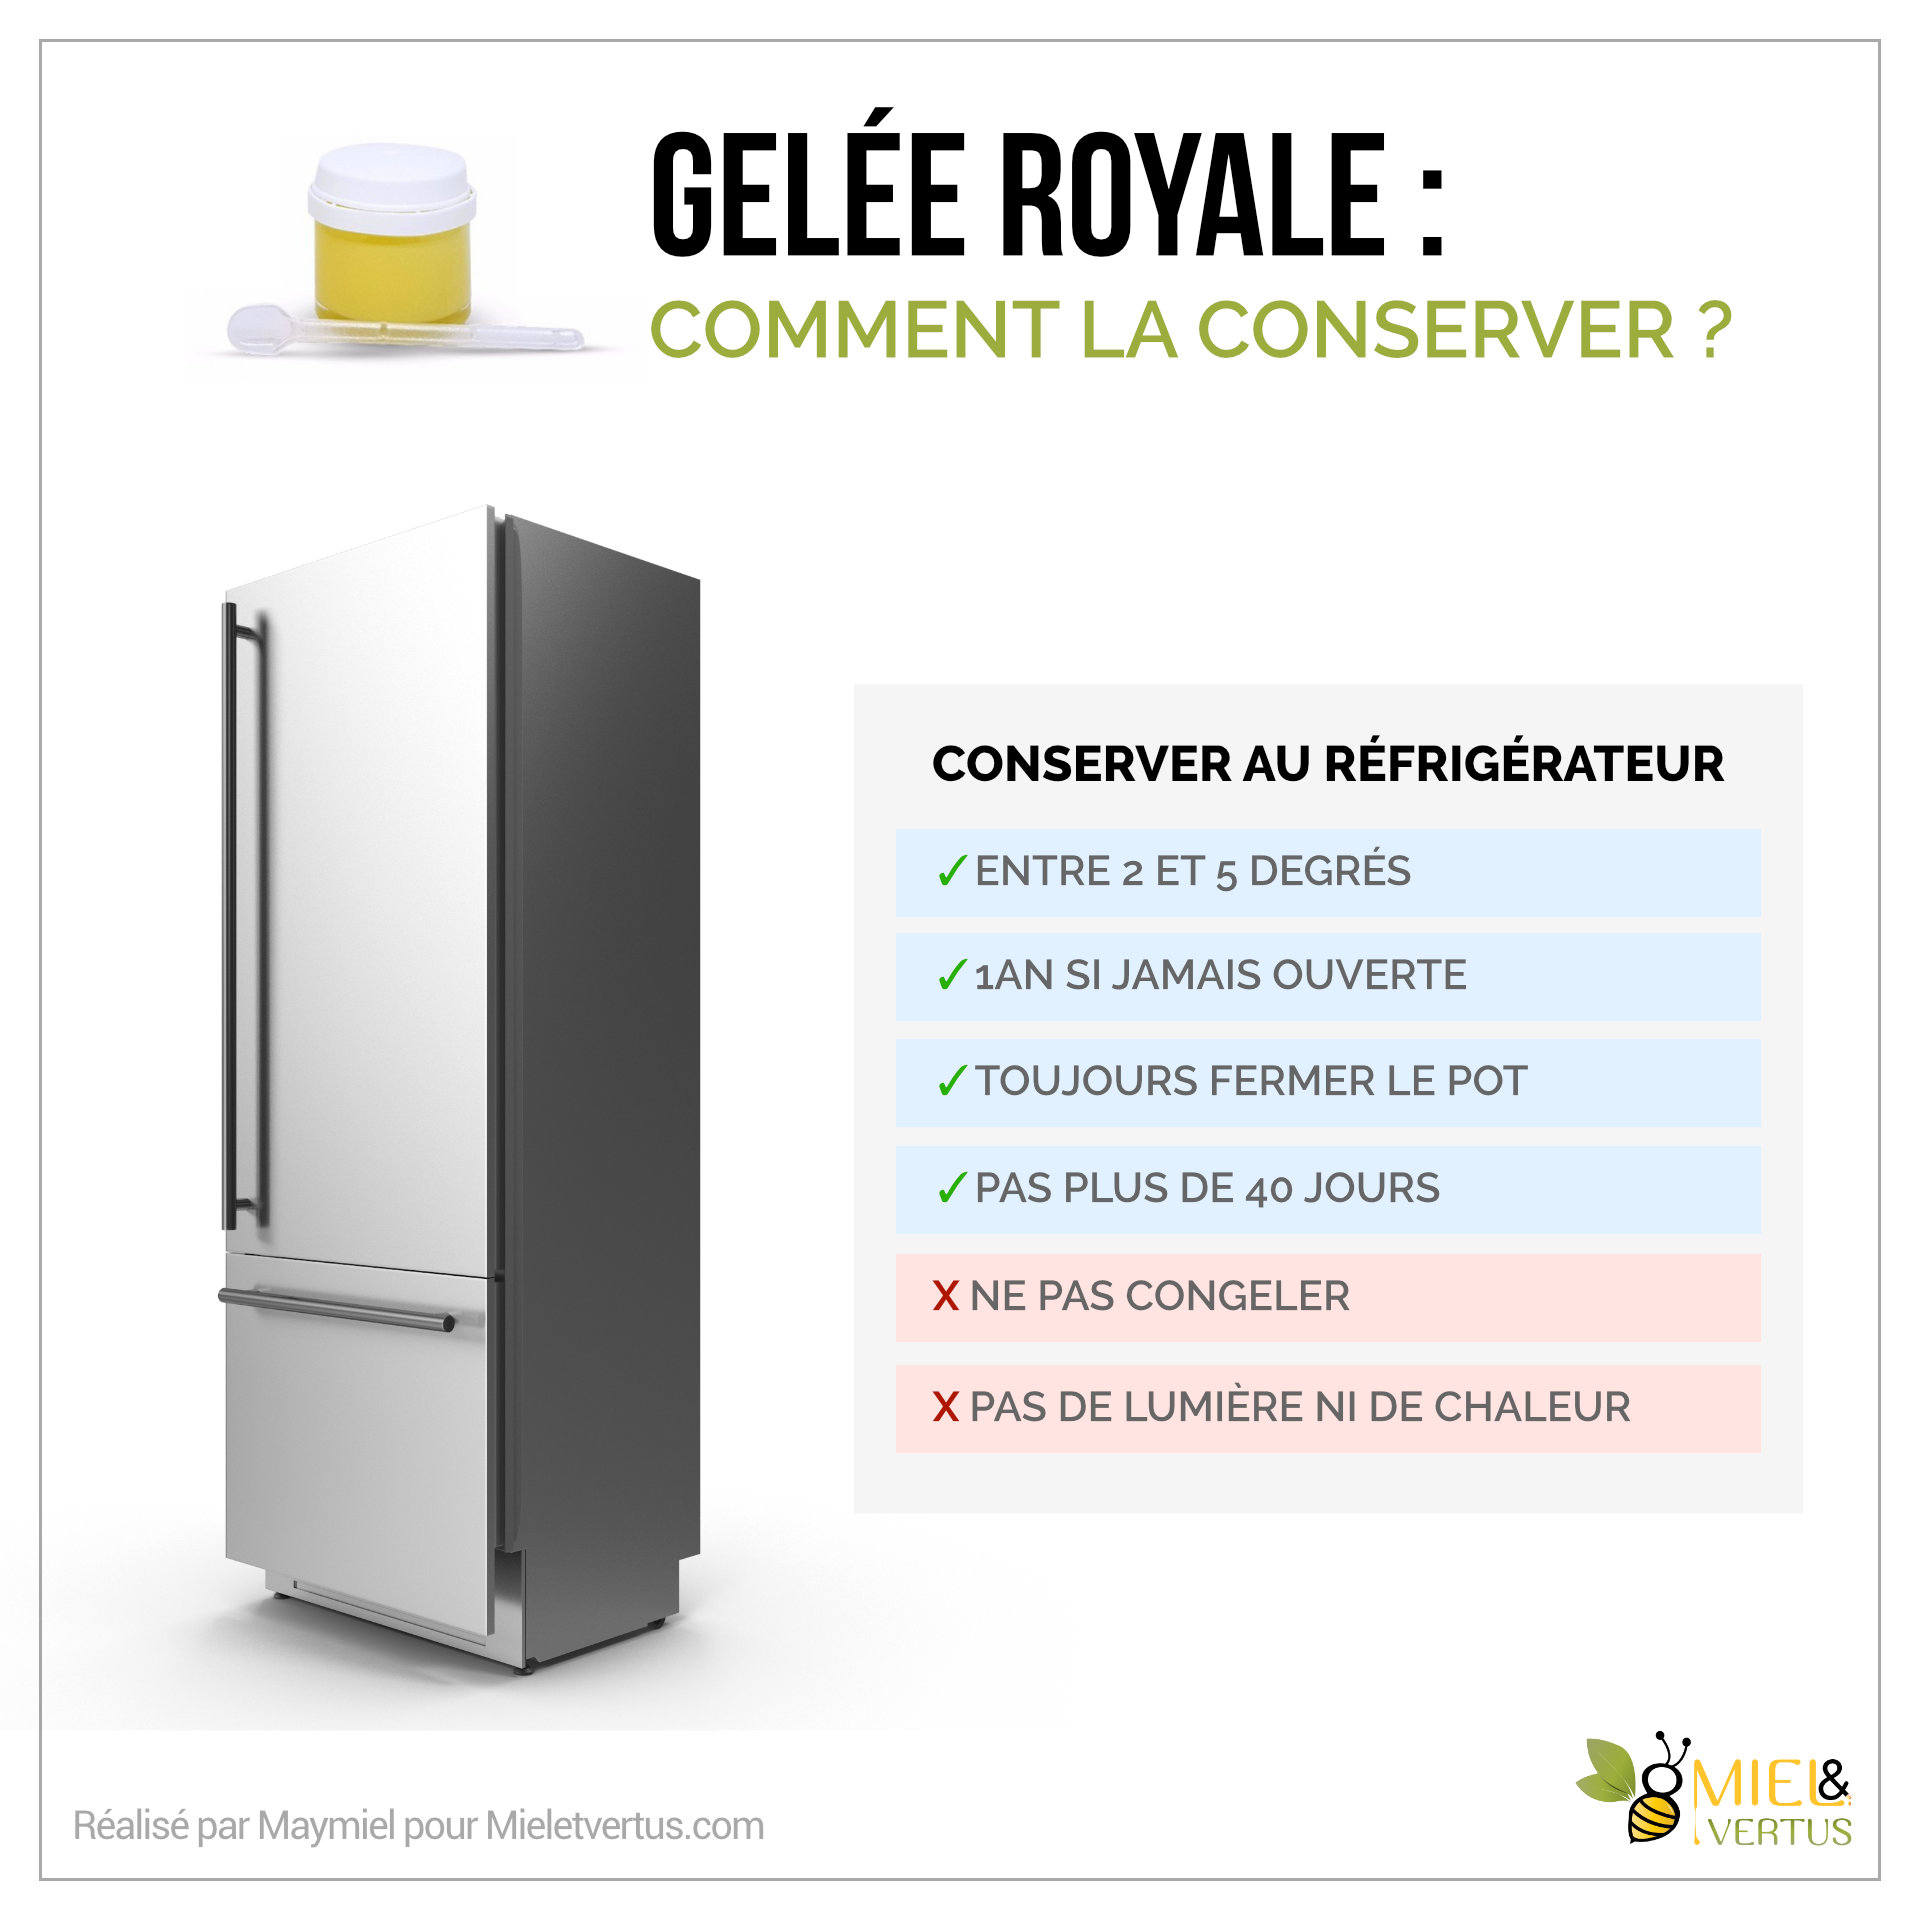 comment-conserver-gelee-royale.jpg